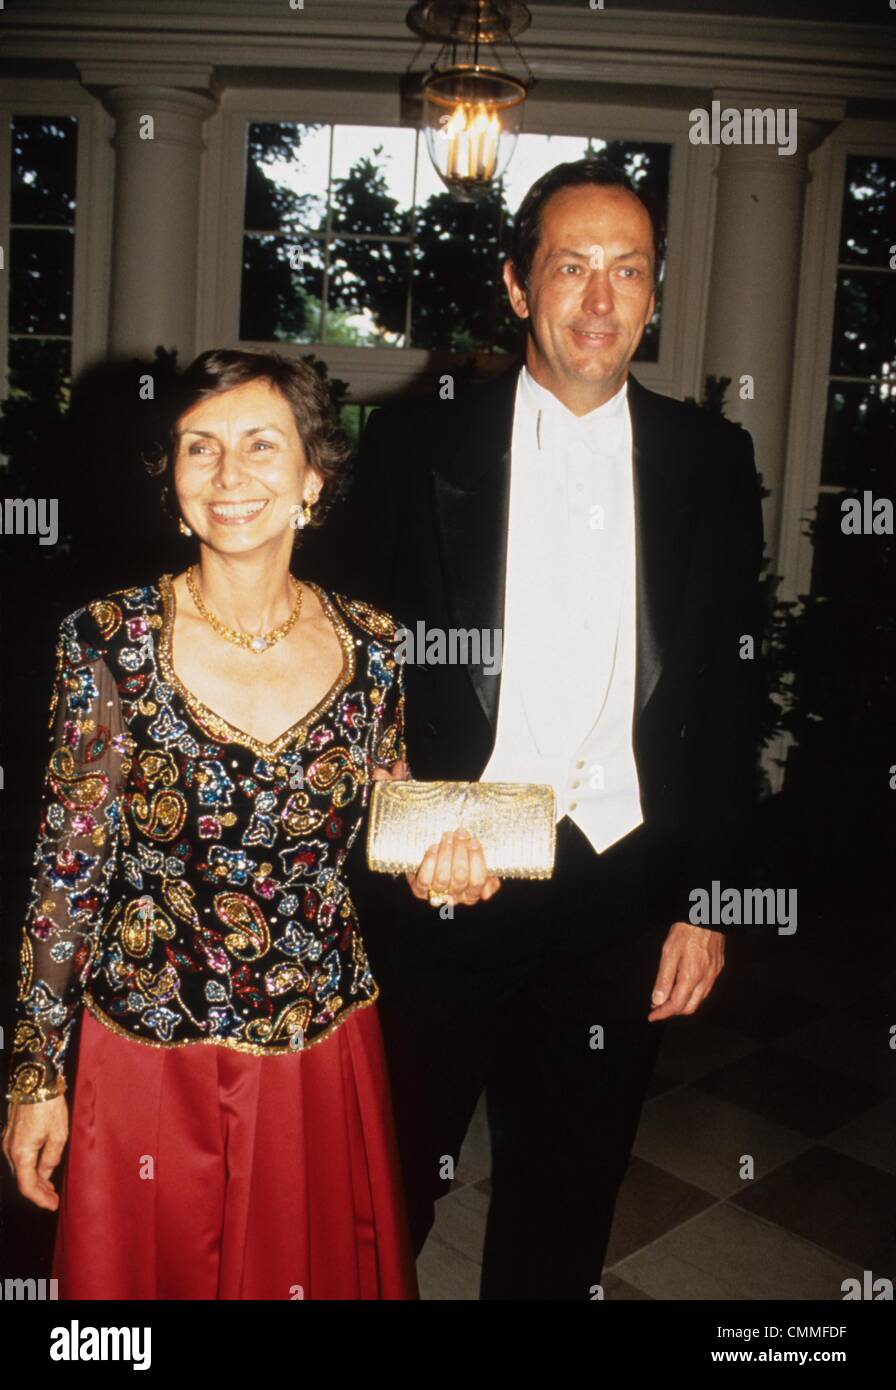 BILL BRADLEY with wife 1994 l8599jkel Credit Image © James M